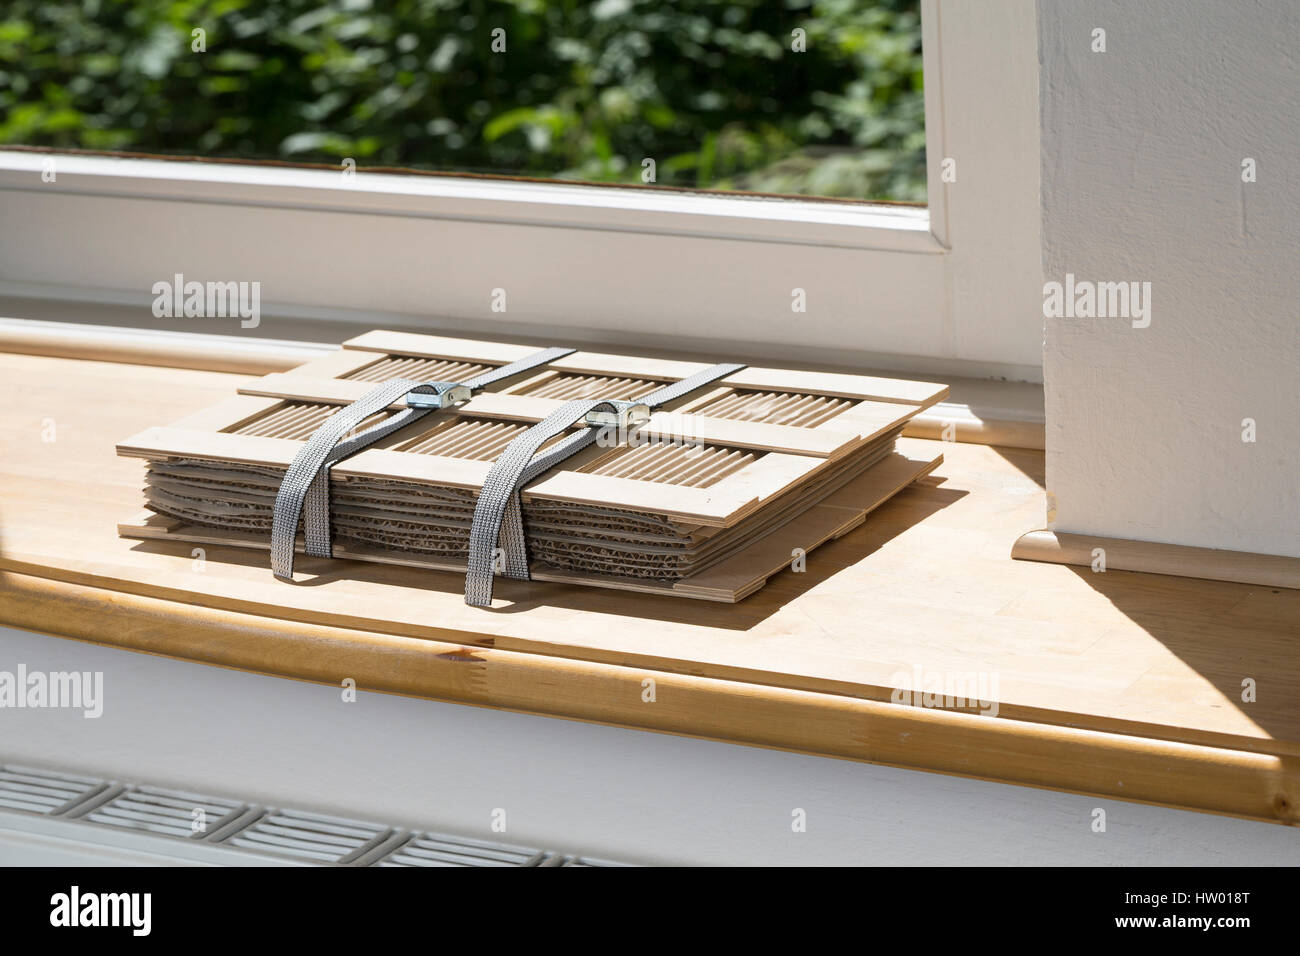 Fensterbank Stock Photos & Fensterbank Stock Images - Alamy